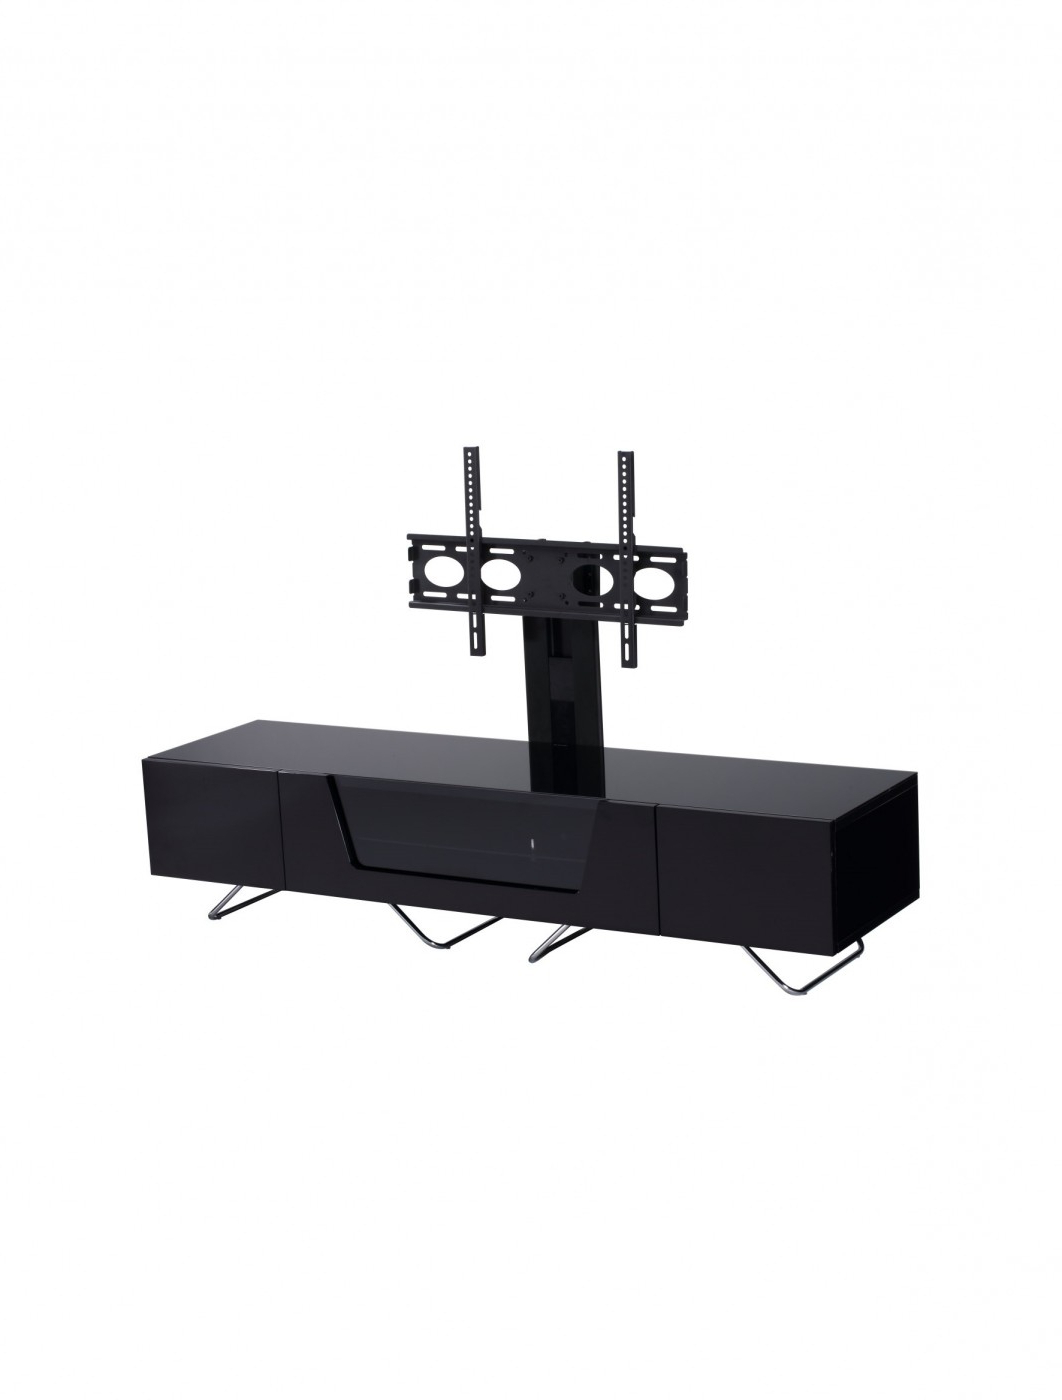 Fashionable Cheap Cantilever Tv Stands Within Alphason Chromium Cantilever Tv Stand Cro2 1600bkt Bk (View 17 of 20)